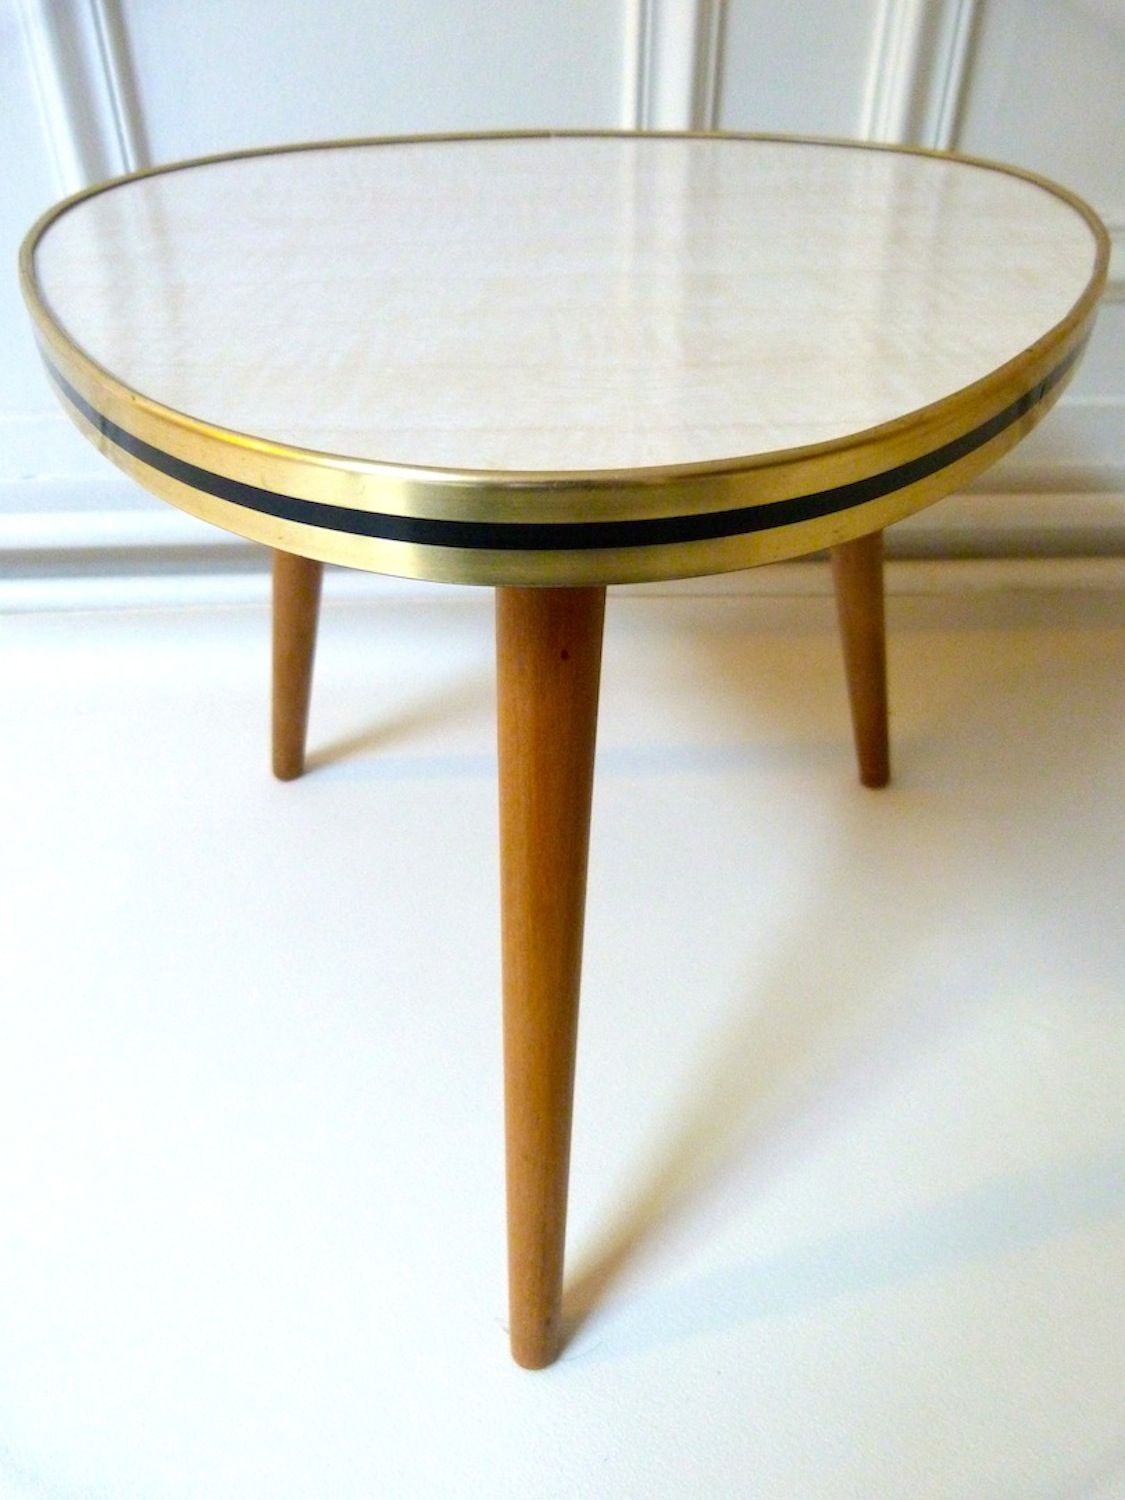 Table Basse En Formica table basse formica tripode années 50 | table basse, table